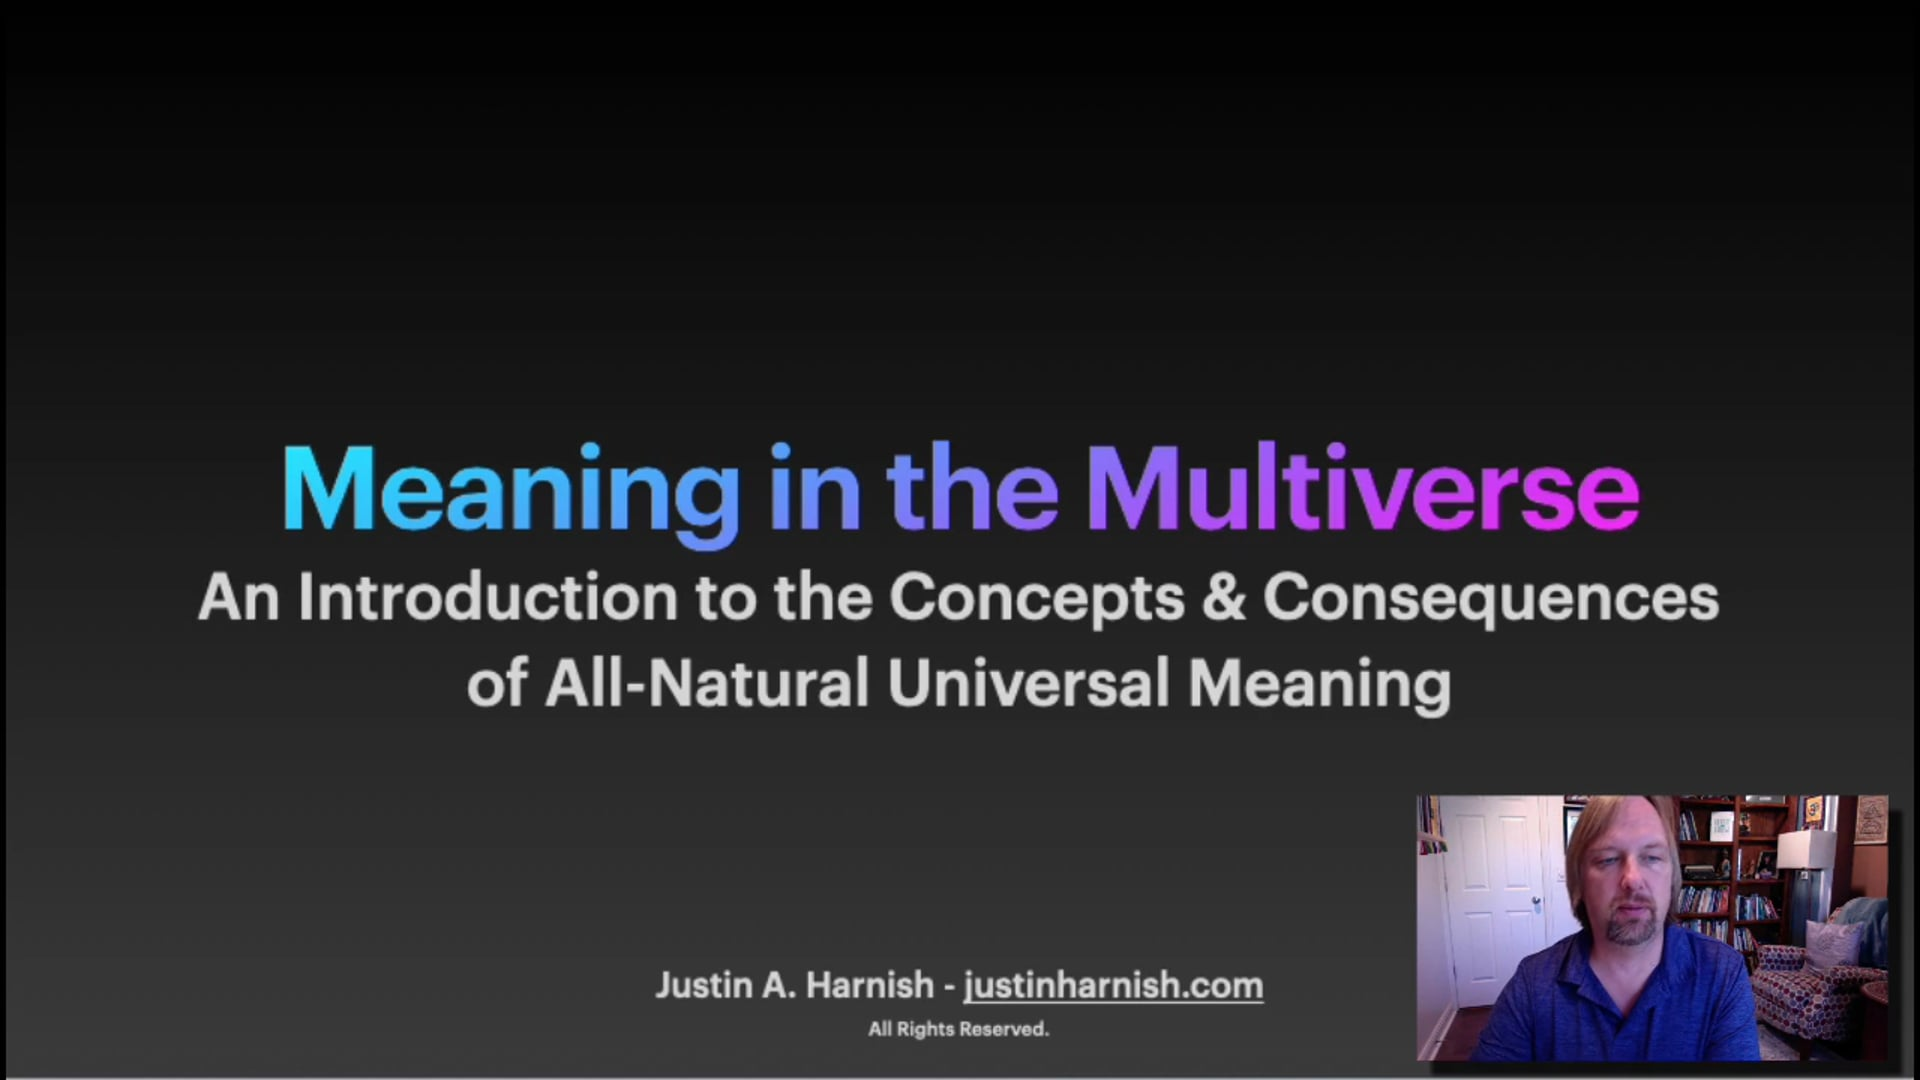 Meaning in the Multiverse - Introductory Trailer (Book published in Winter 2020)